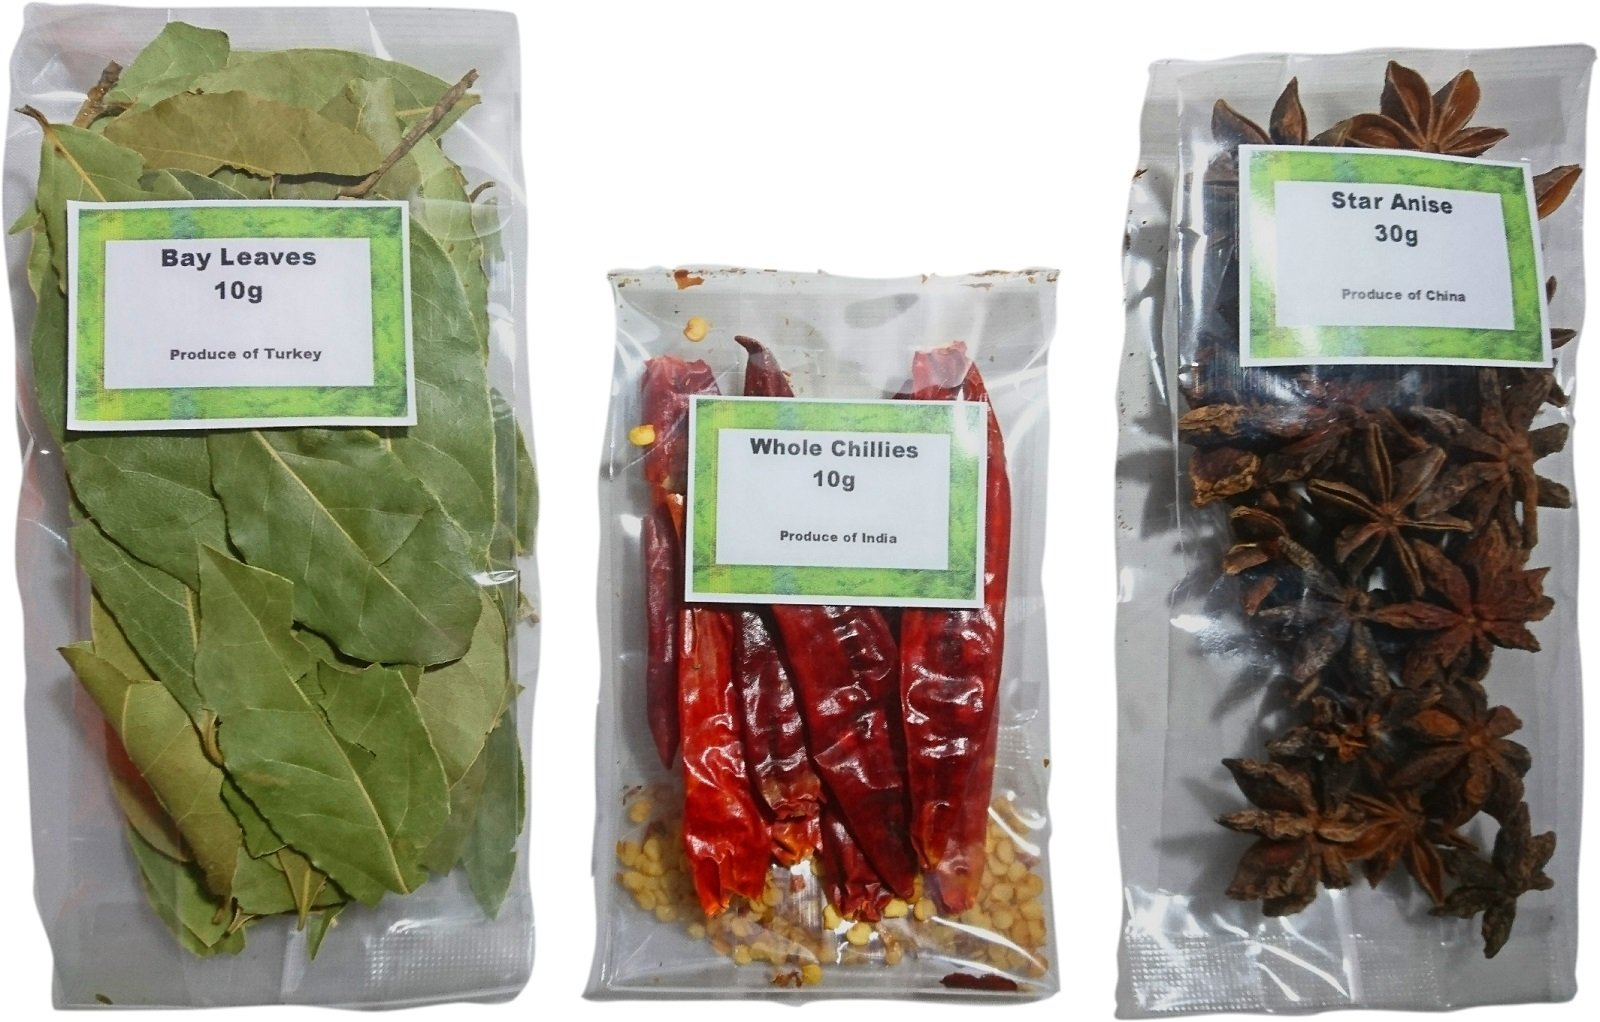 Authentic Indian Spice Gift Set Curry Spice KIT - Makes UP to 24 CURRIES - Quality Spices with Free Post 3